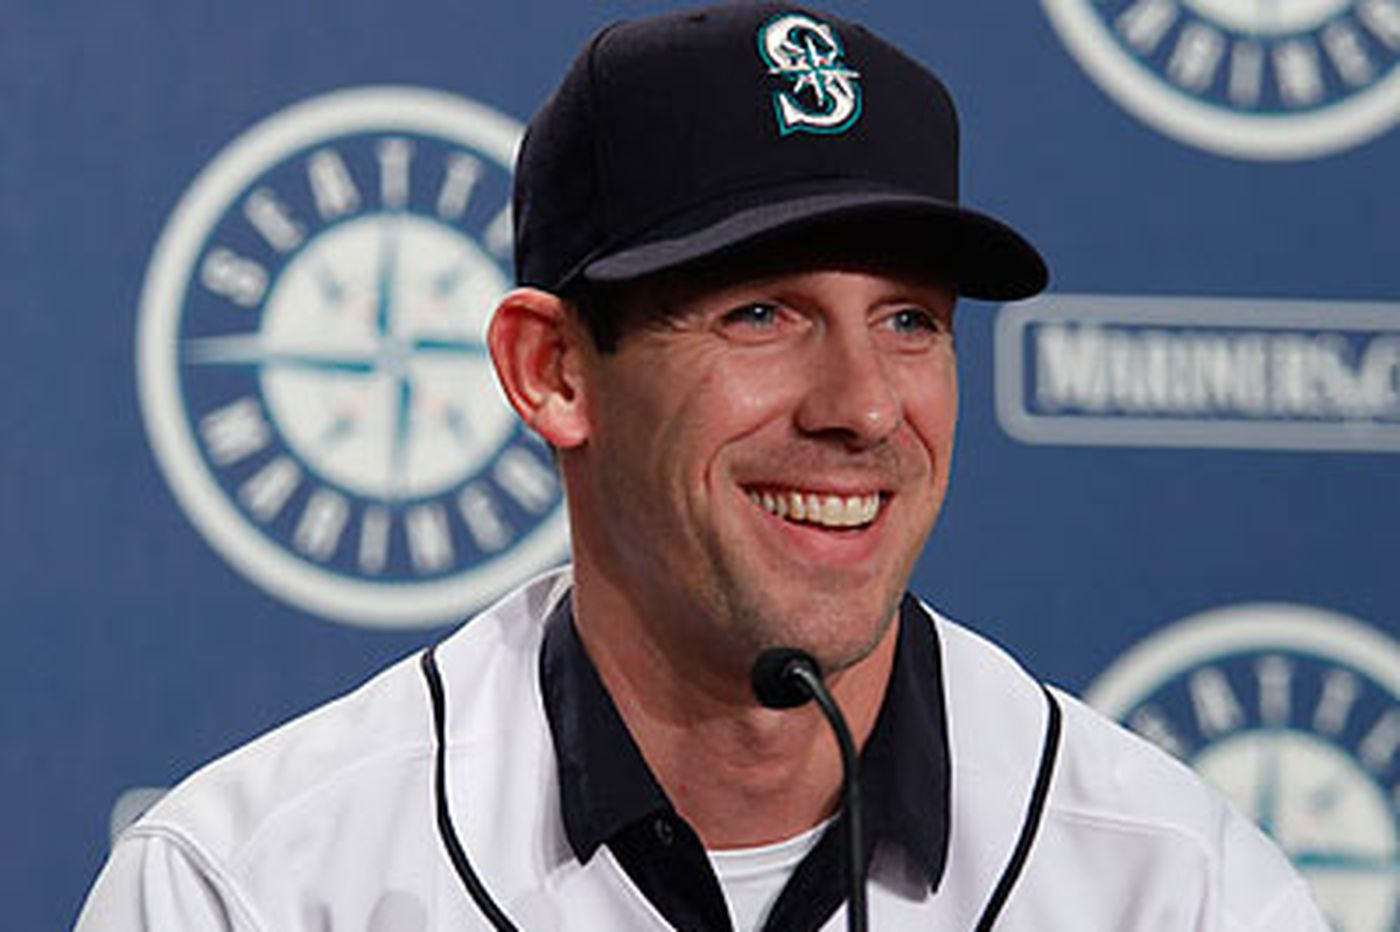 Minor foot surgery could limit Cliff Lee at M's camp